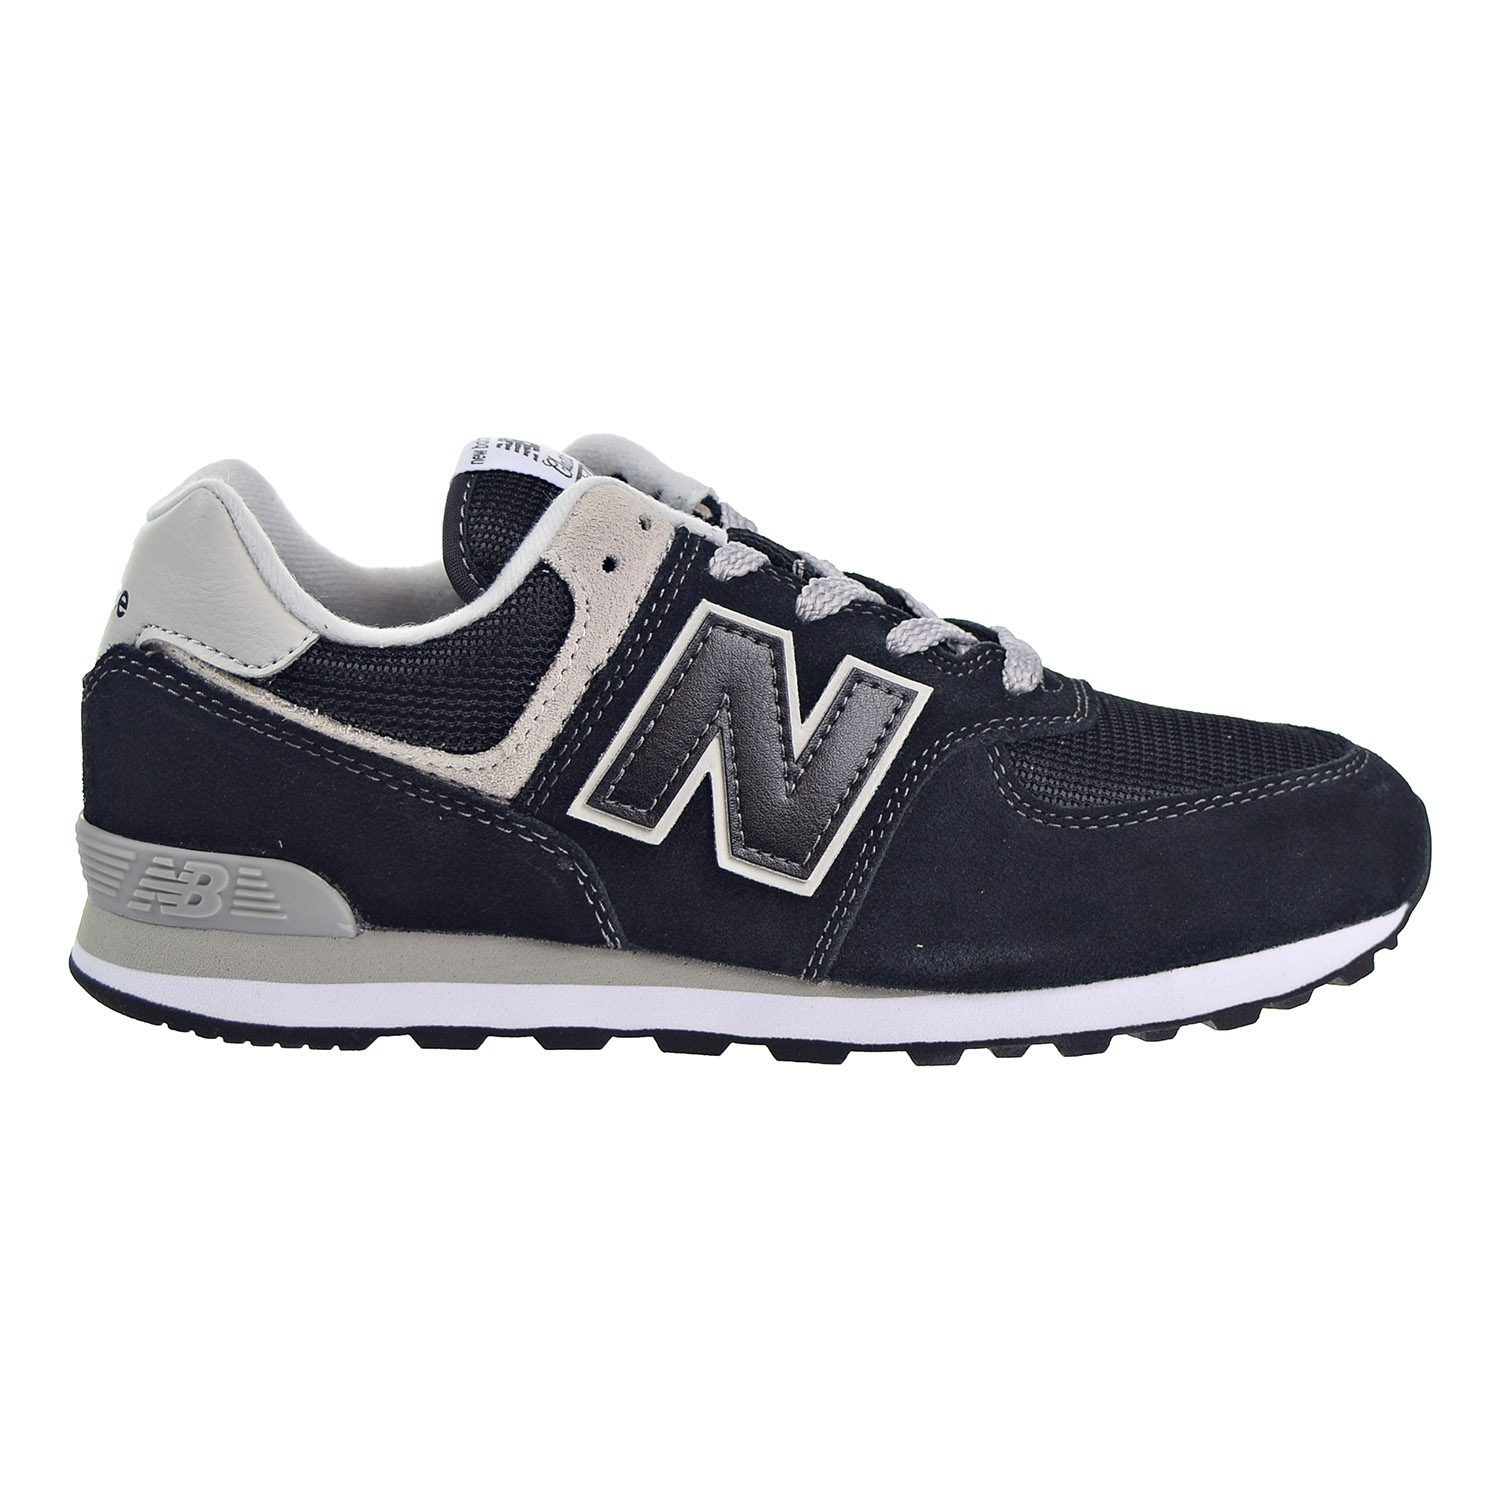 3309b64ed9ee50 Details about New Balance 574 Core Big Kid's Shoes Black/Grey GC574-GK